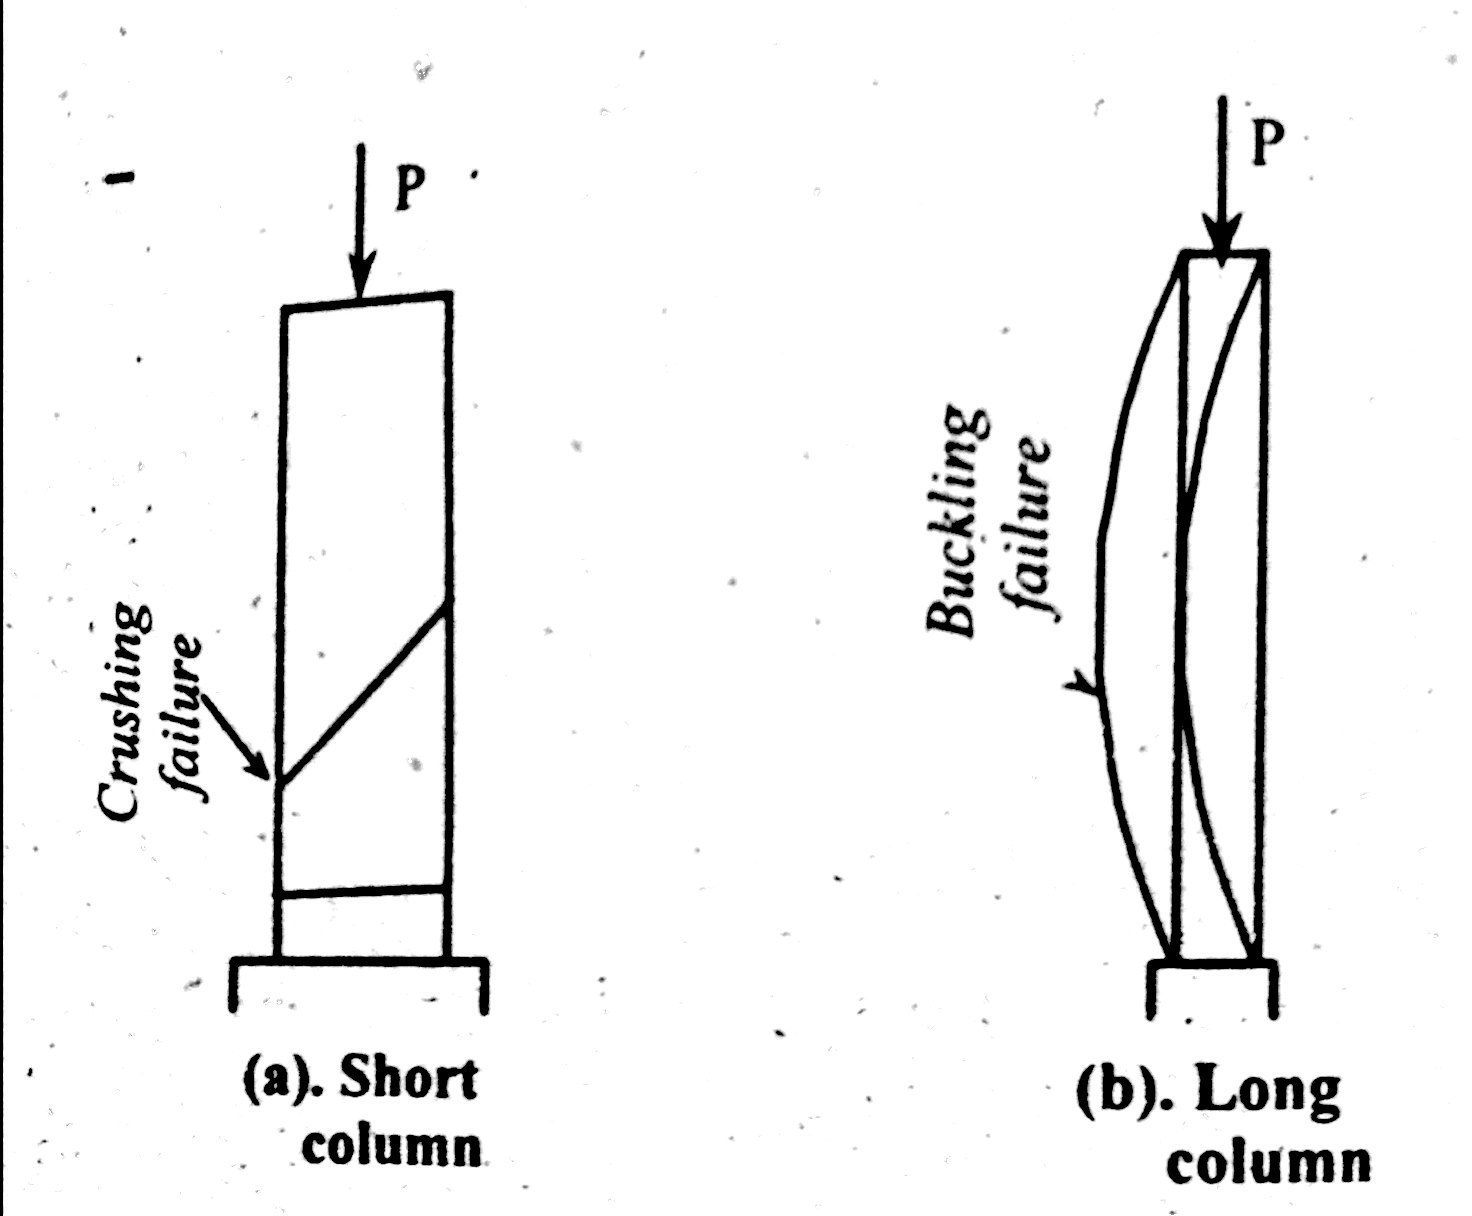 Column Failure Patterns Long Column Short Column